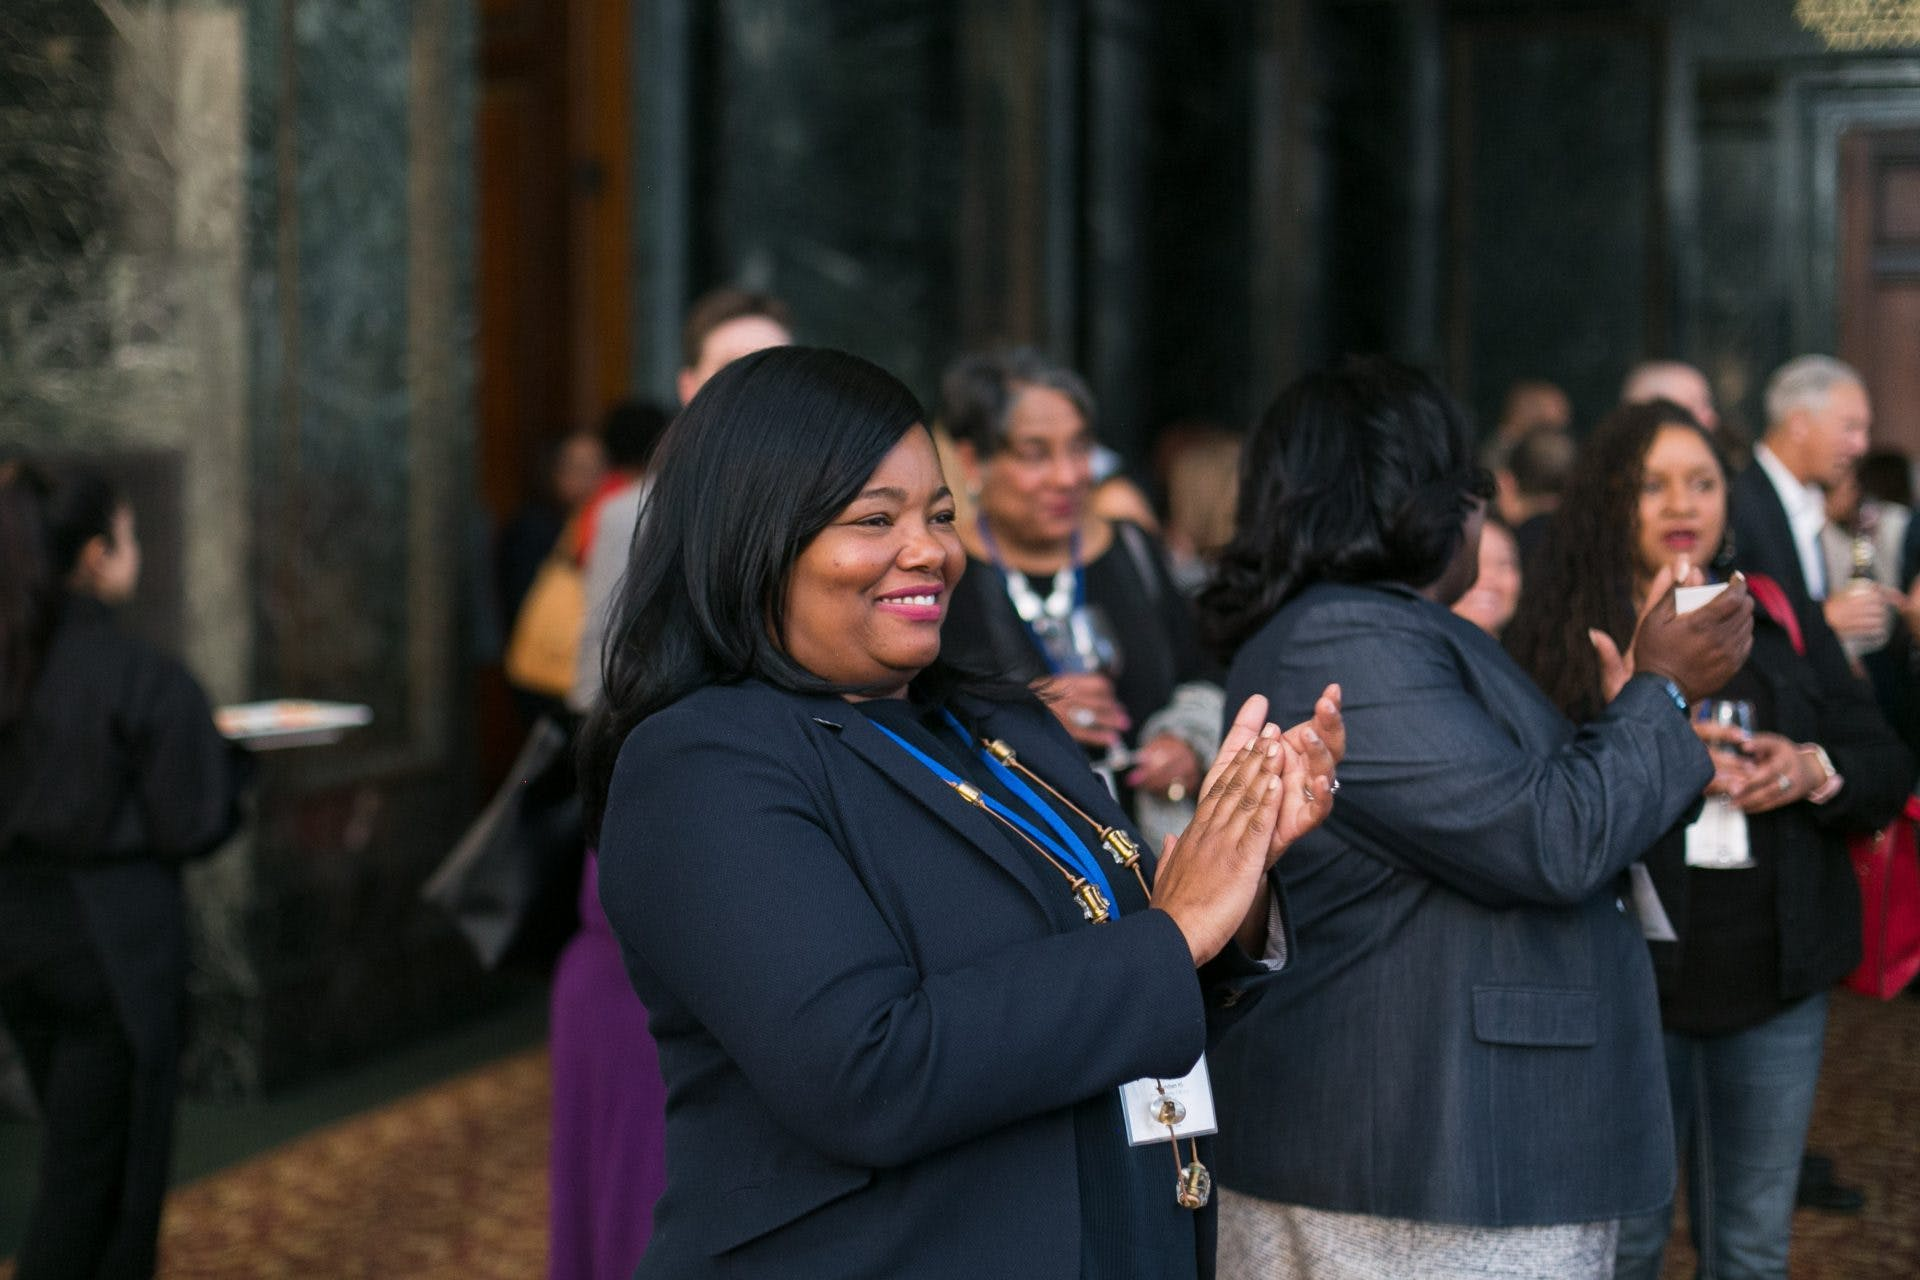 Female-presenting black woman clapping and wearing a suit jacket and event lanyard